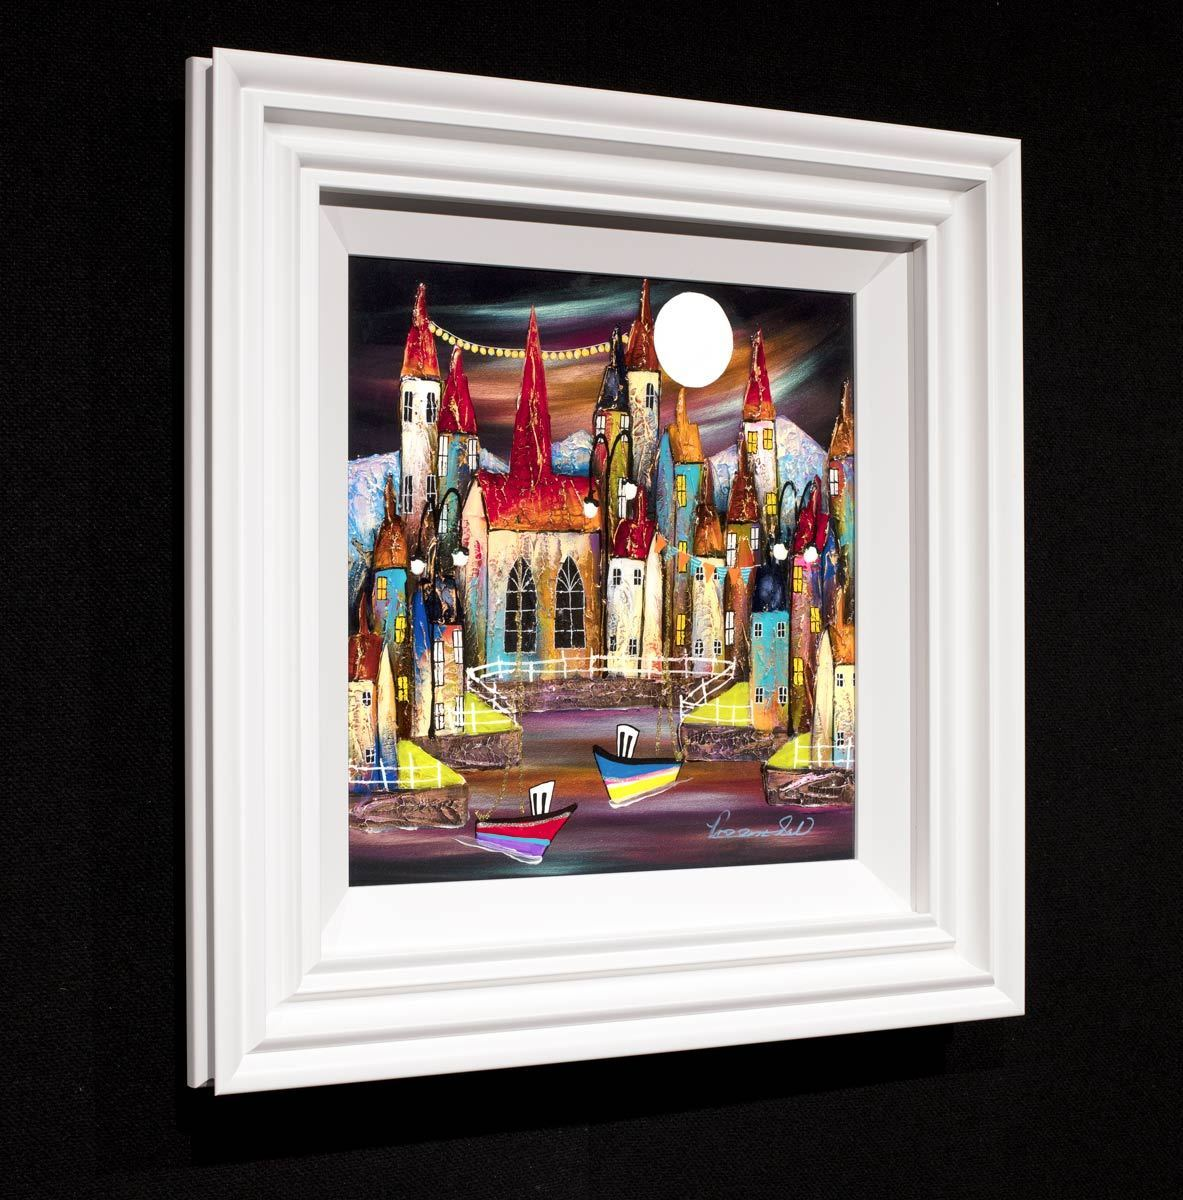 Midnight Escape - Original Rozanne Bell Framed